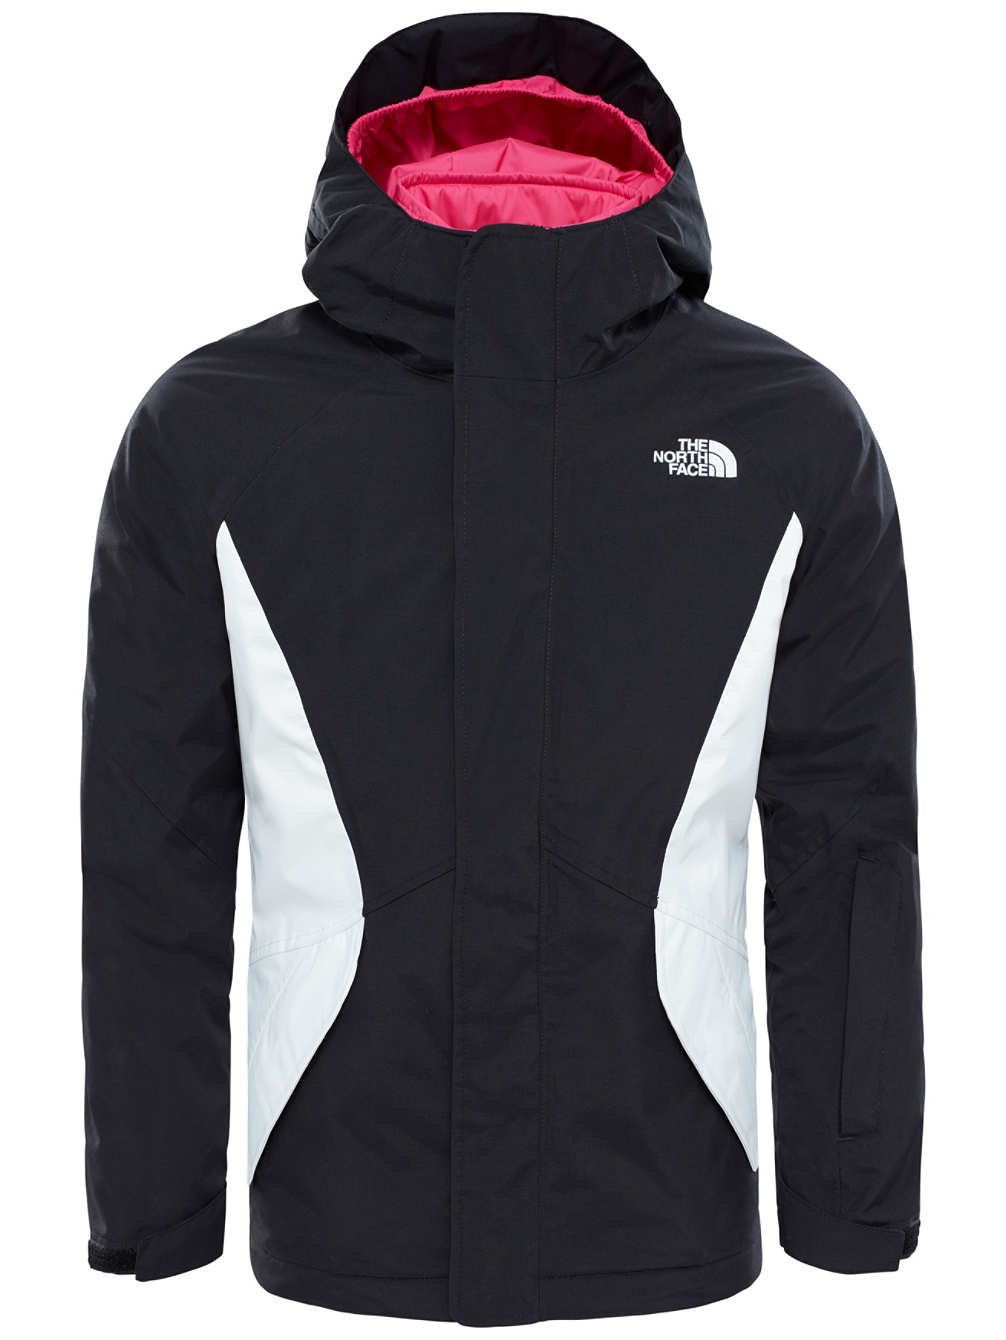 The North Face Big Girls' Kira Triclimate Jacket - tnf black, m/10-12